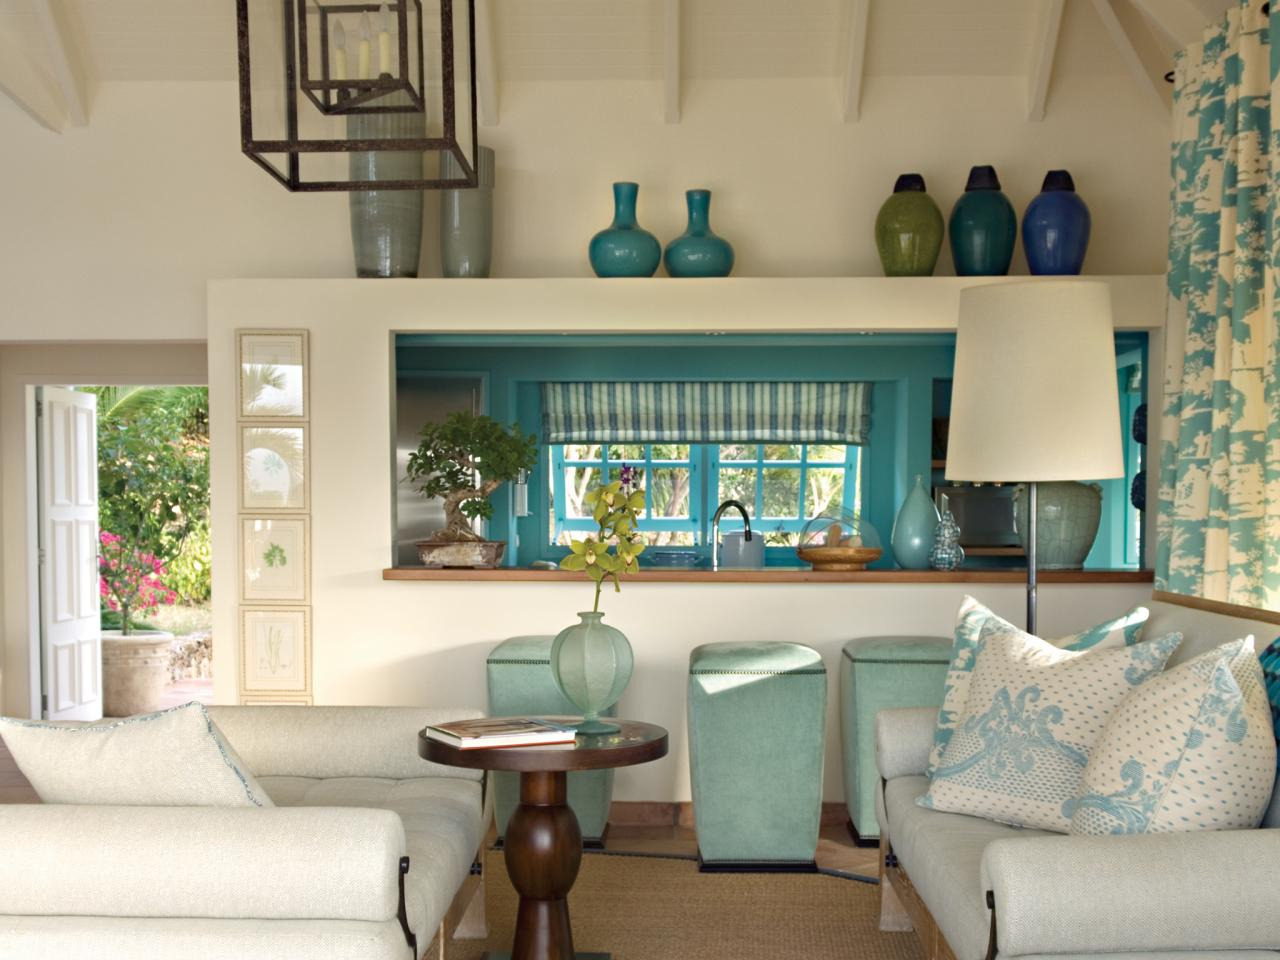 Delightful Alfresco Dining With Kitchen Pass Through